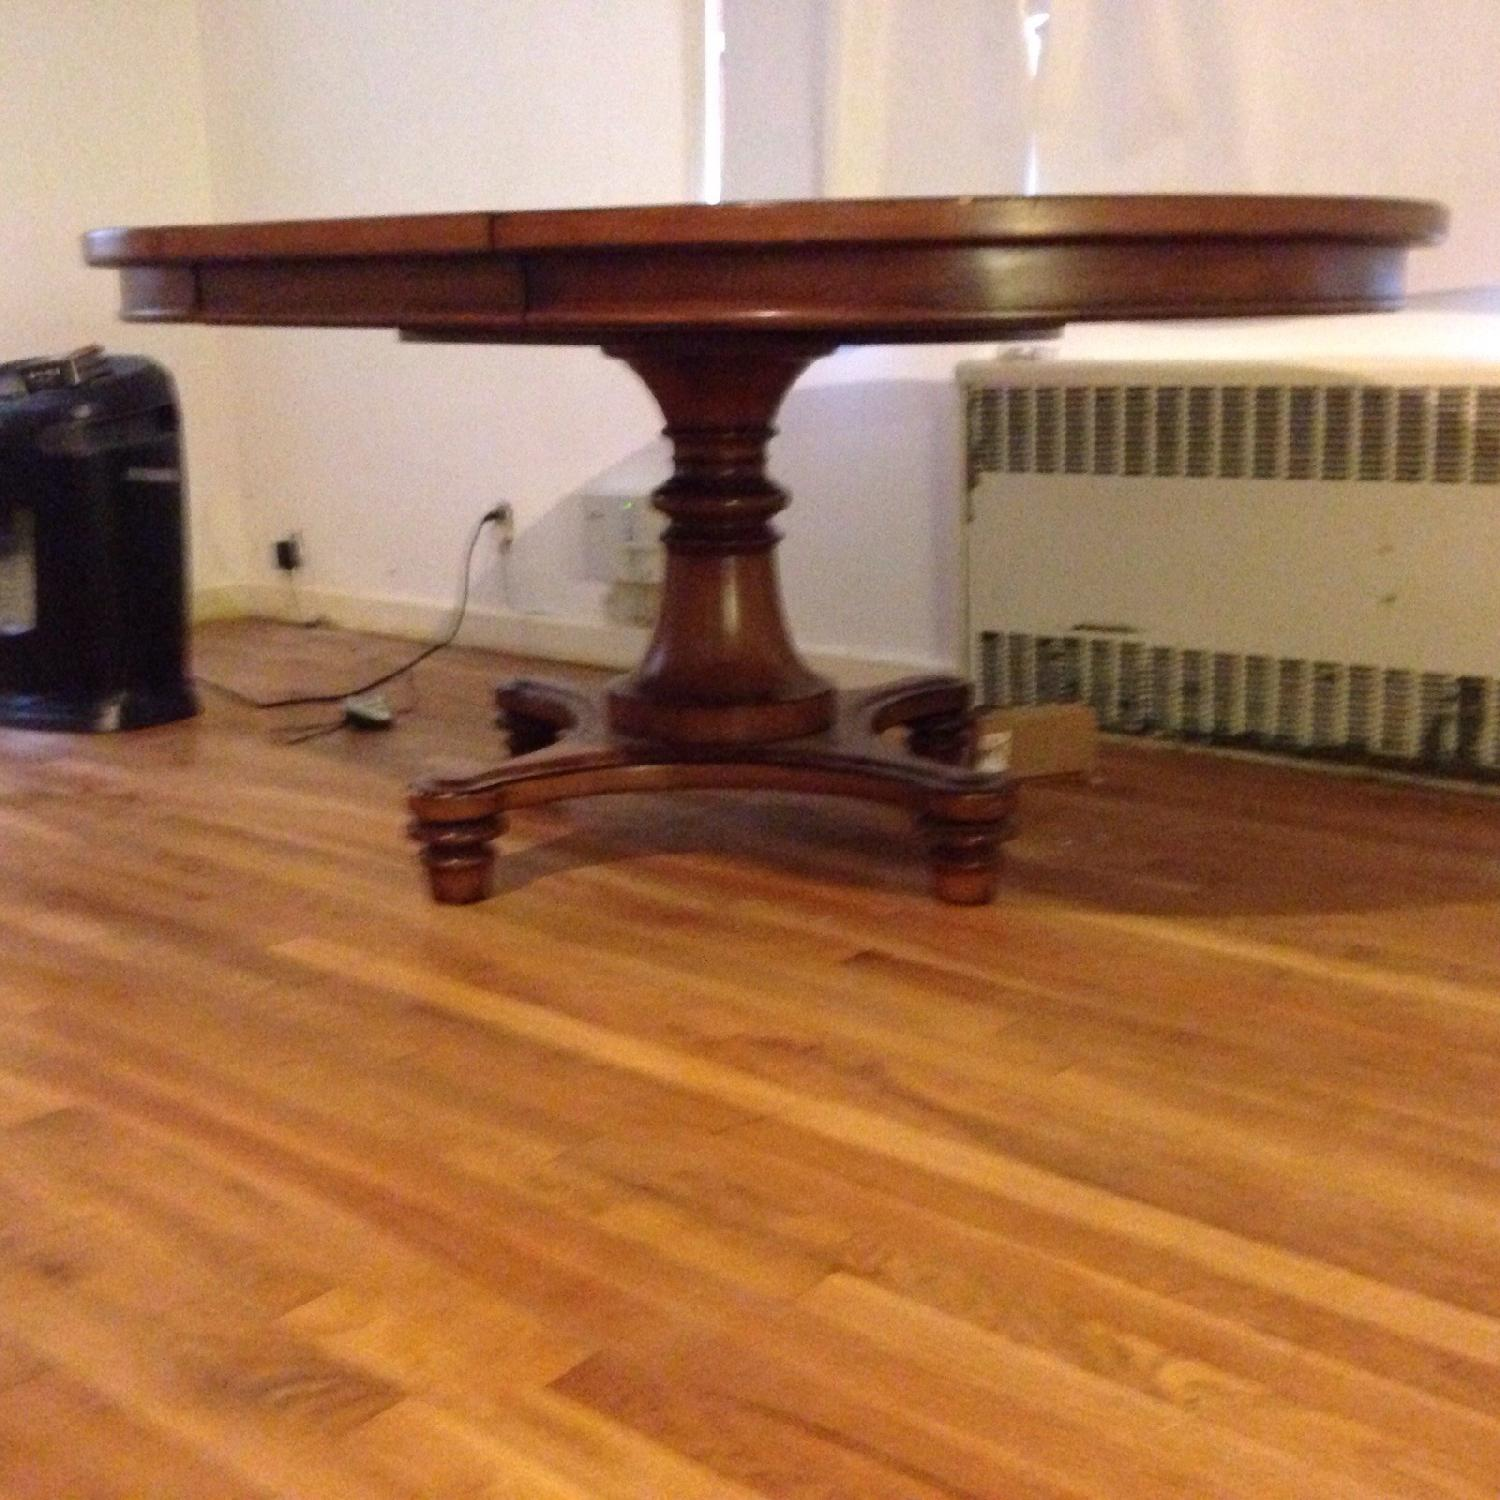 Pottery Barn Dining Room Table w/ Leaf - image-3